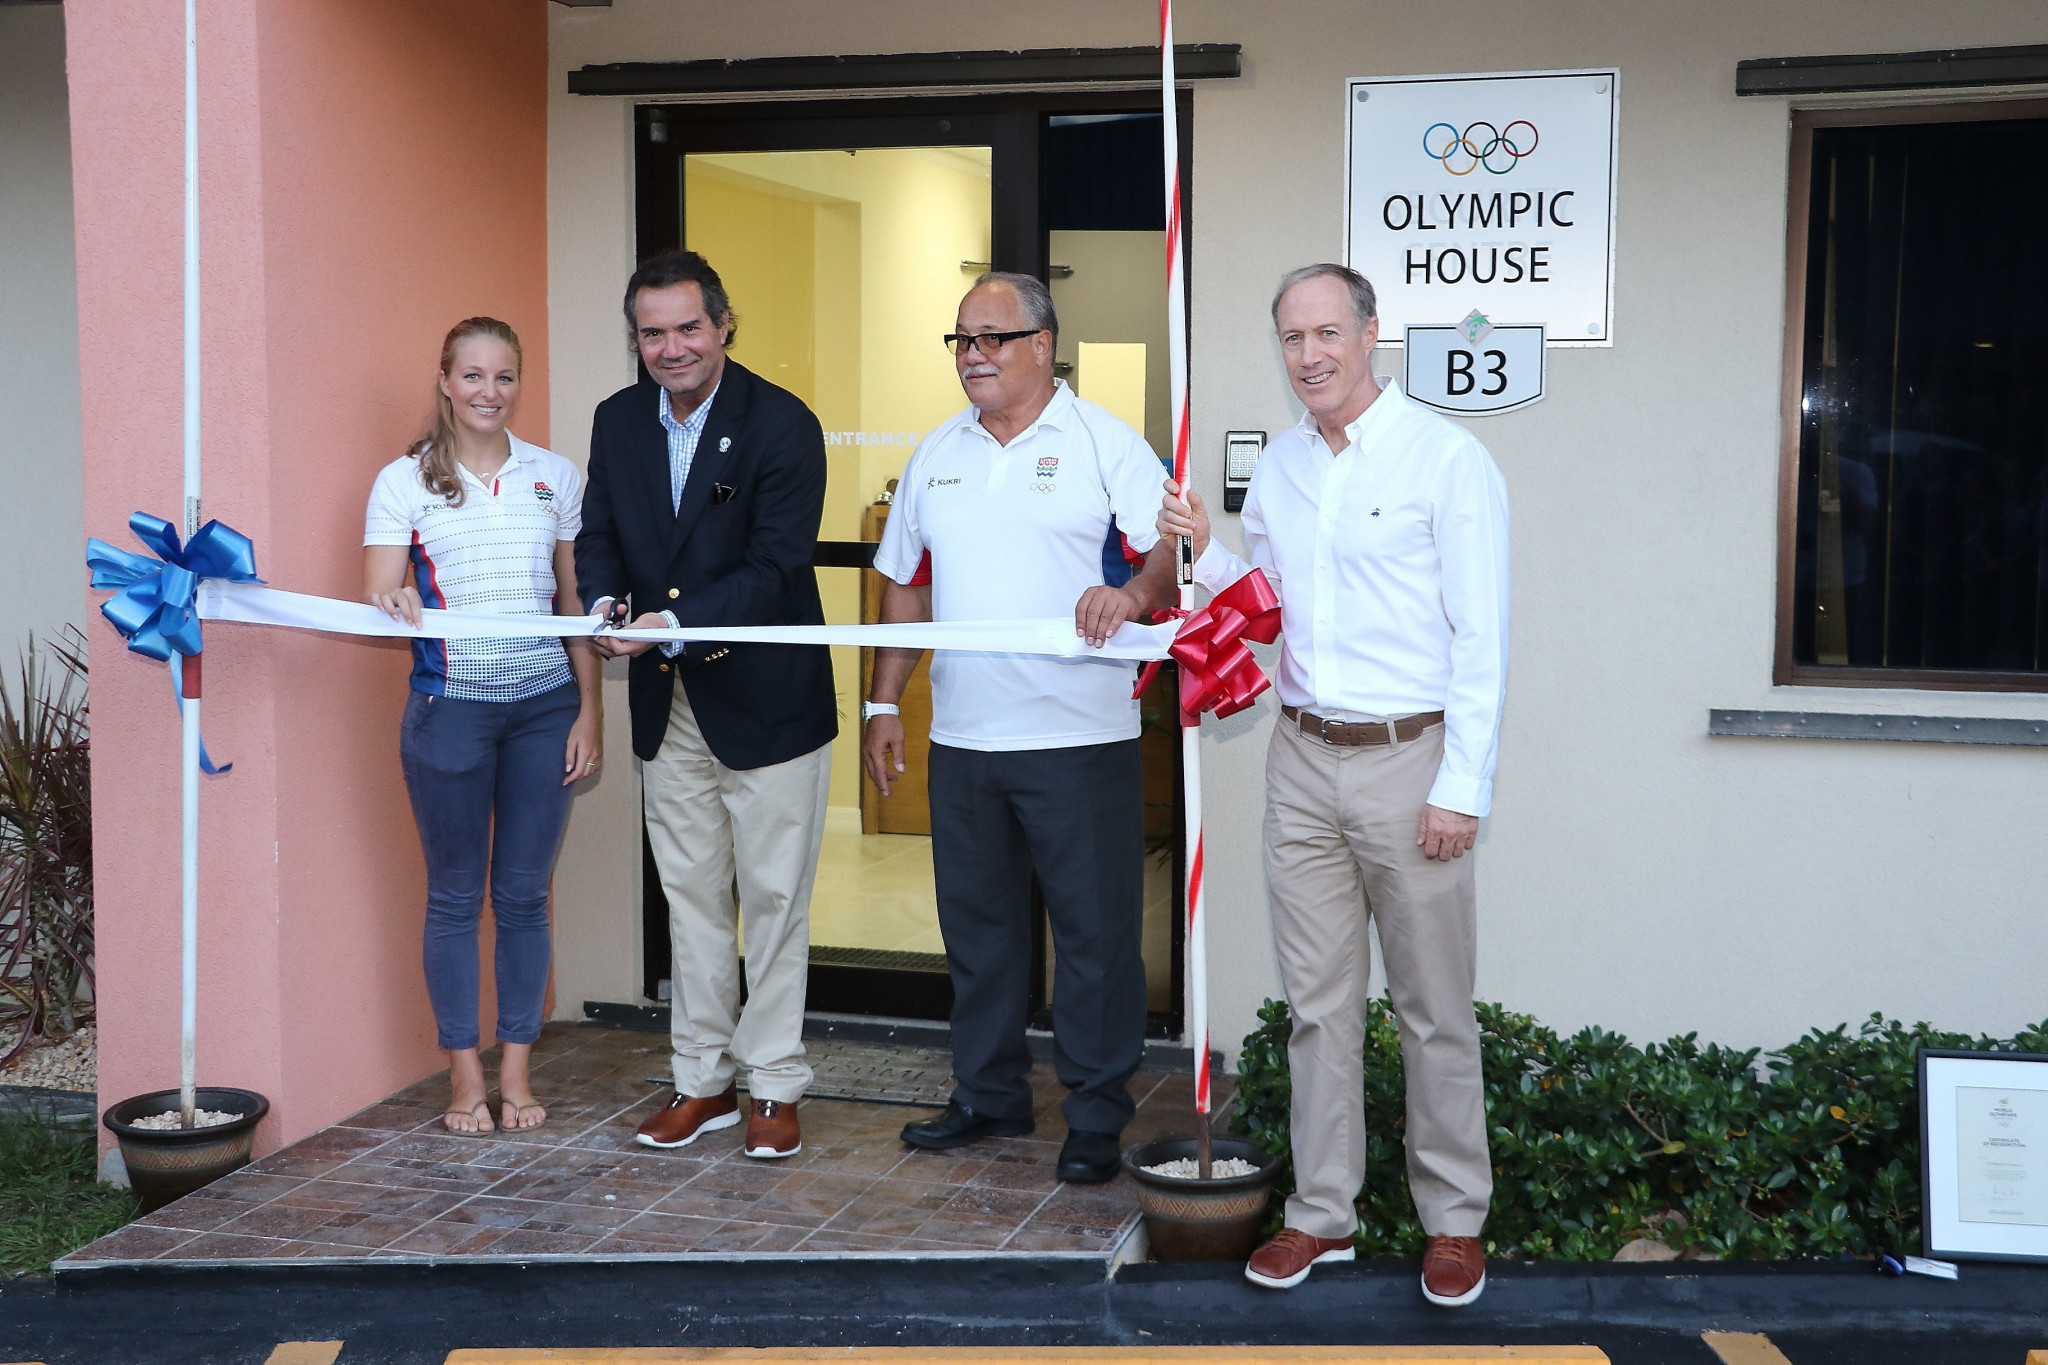 Cayman Islands fulfill dream of first Olympic House